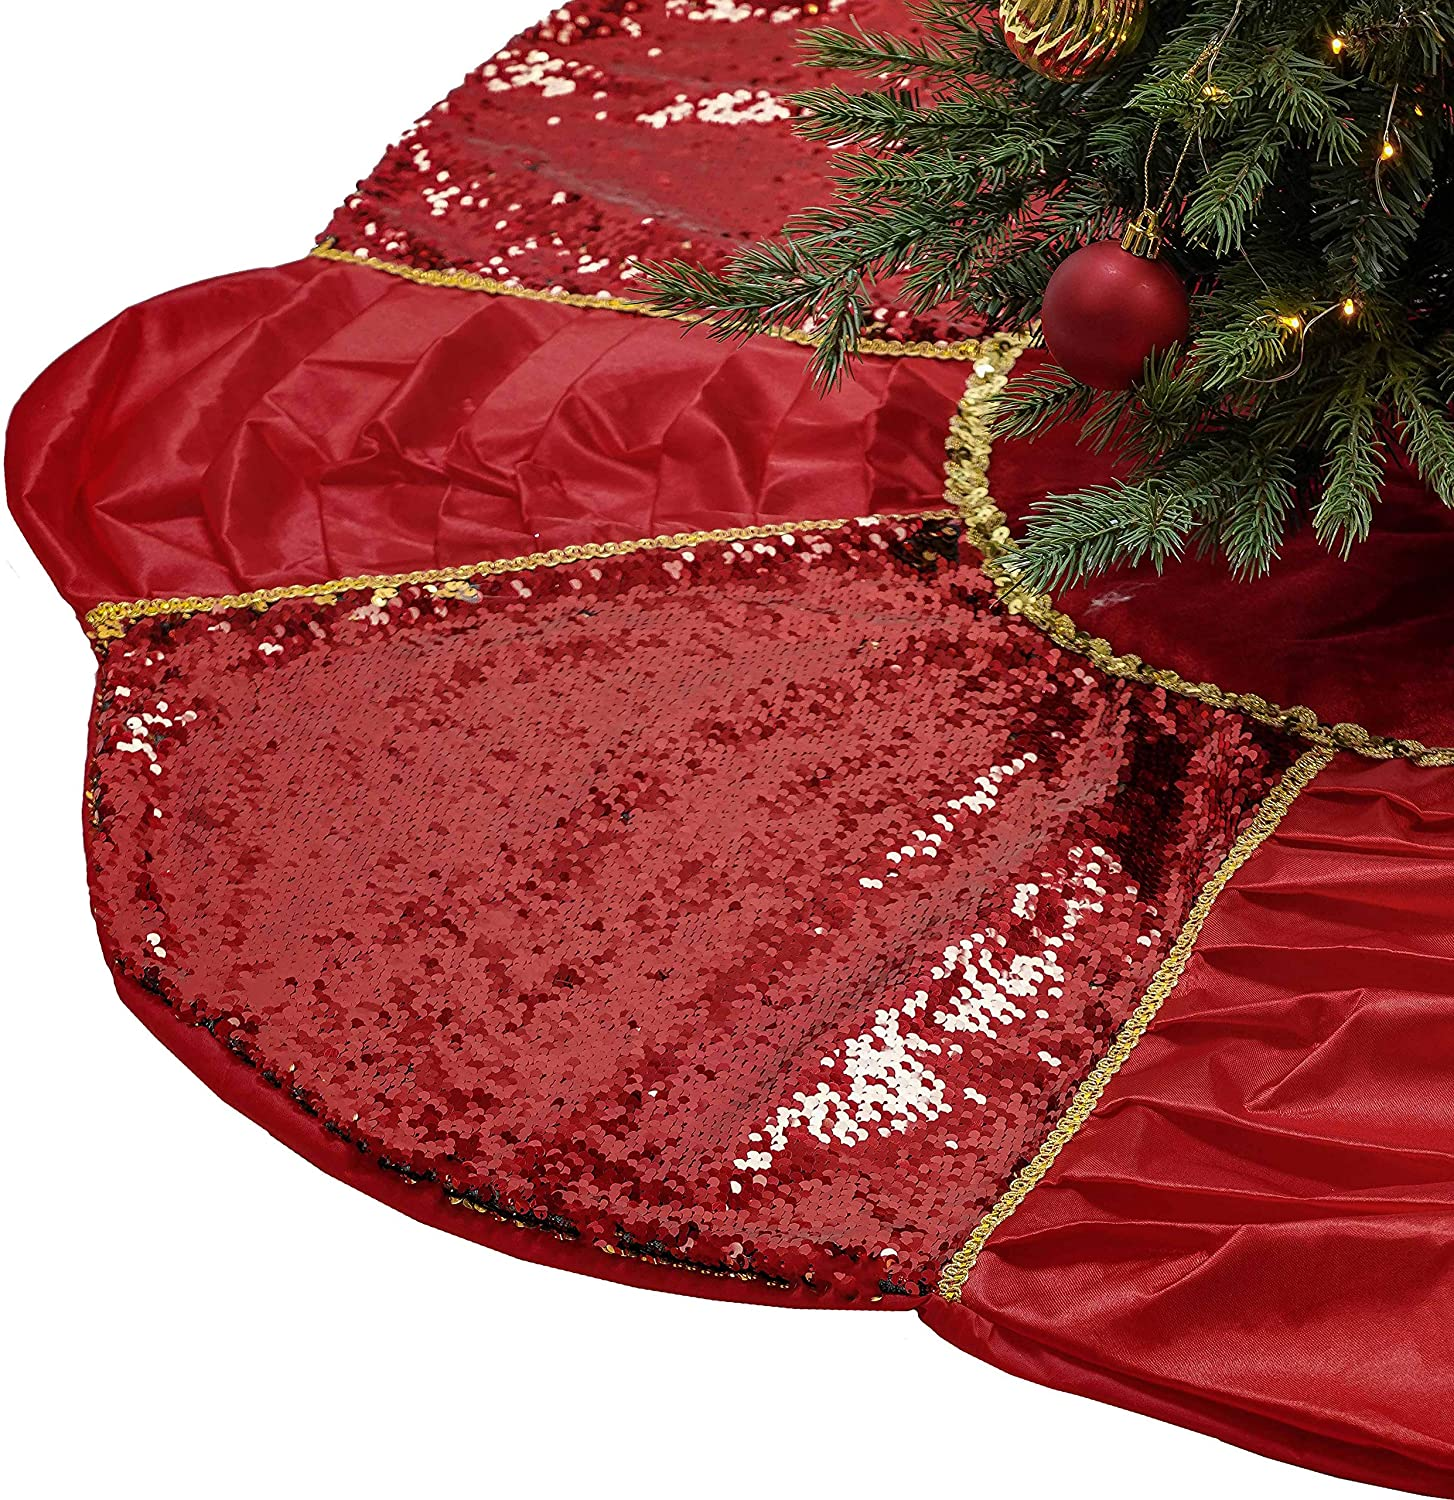 Valery Madelyn 48 inch Luxury Red Gold Reversible Sequins Christmas Tree Skirt with Ruffles and Flower Unique Shaped, Themed with Christmas Ornaments Decorations (Not Included)